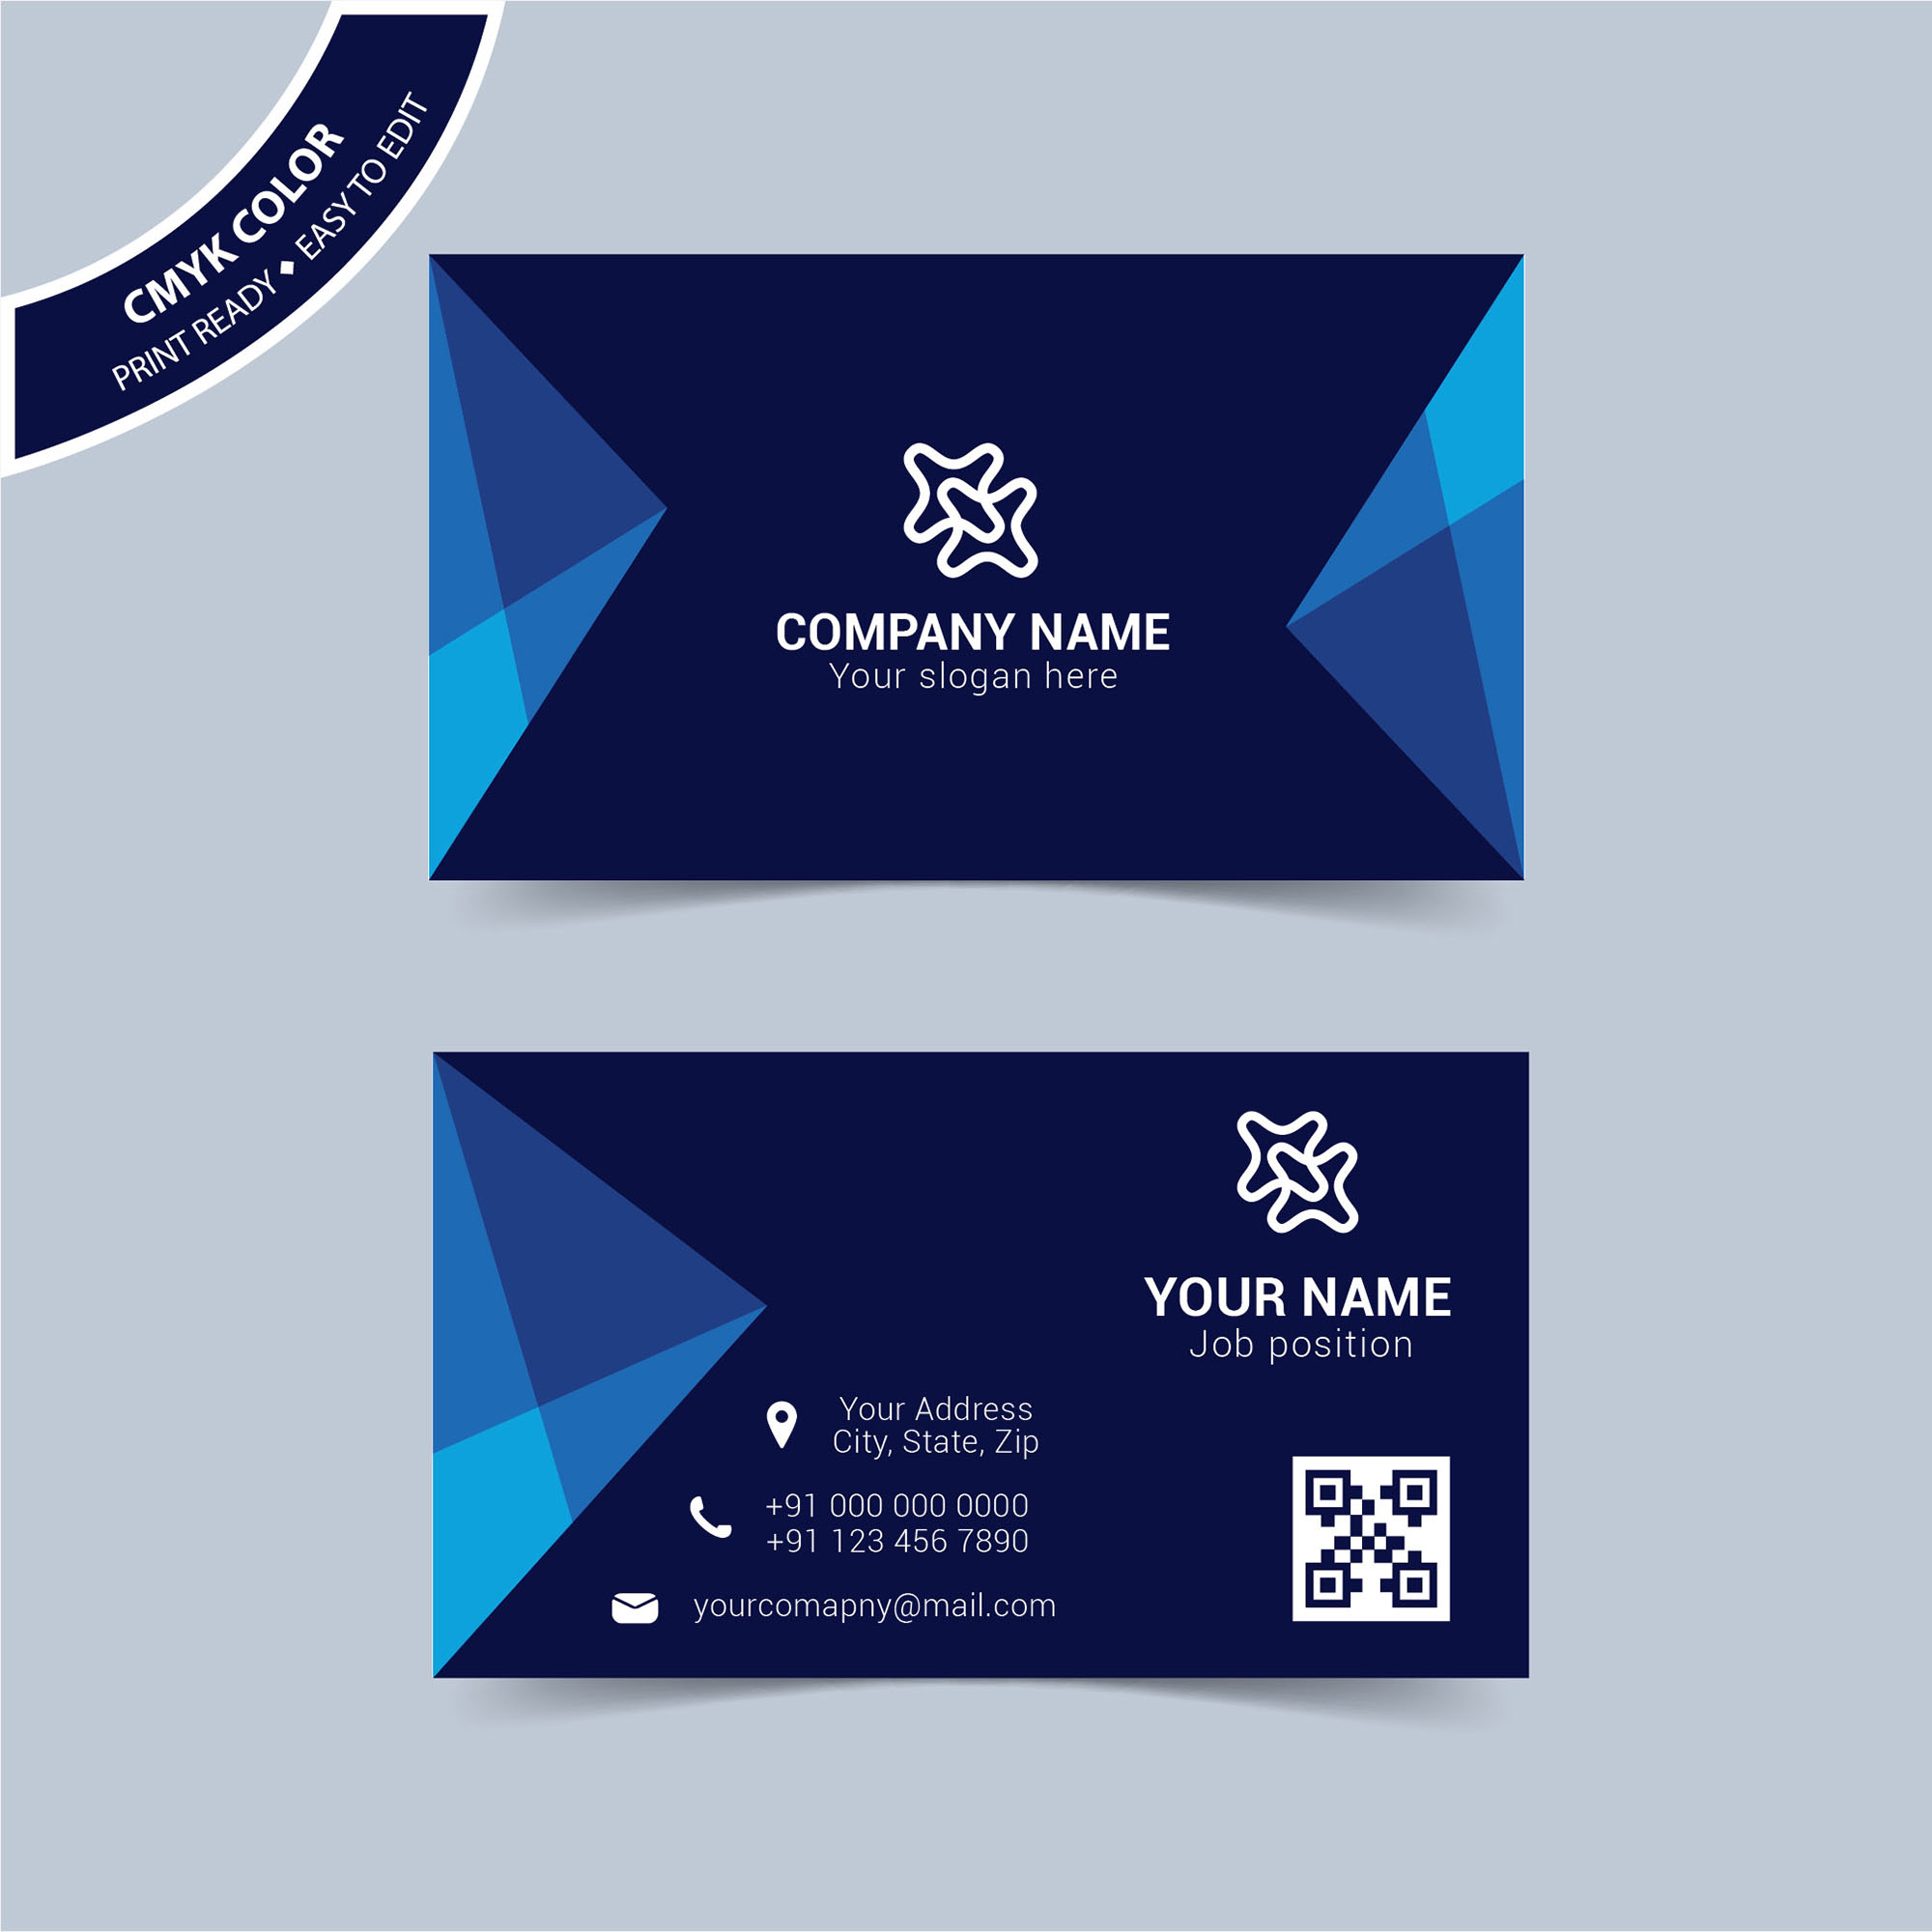 Modern blue business card template free download wisxi business card business cards business card design business card template design templates colourmoves